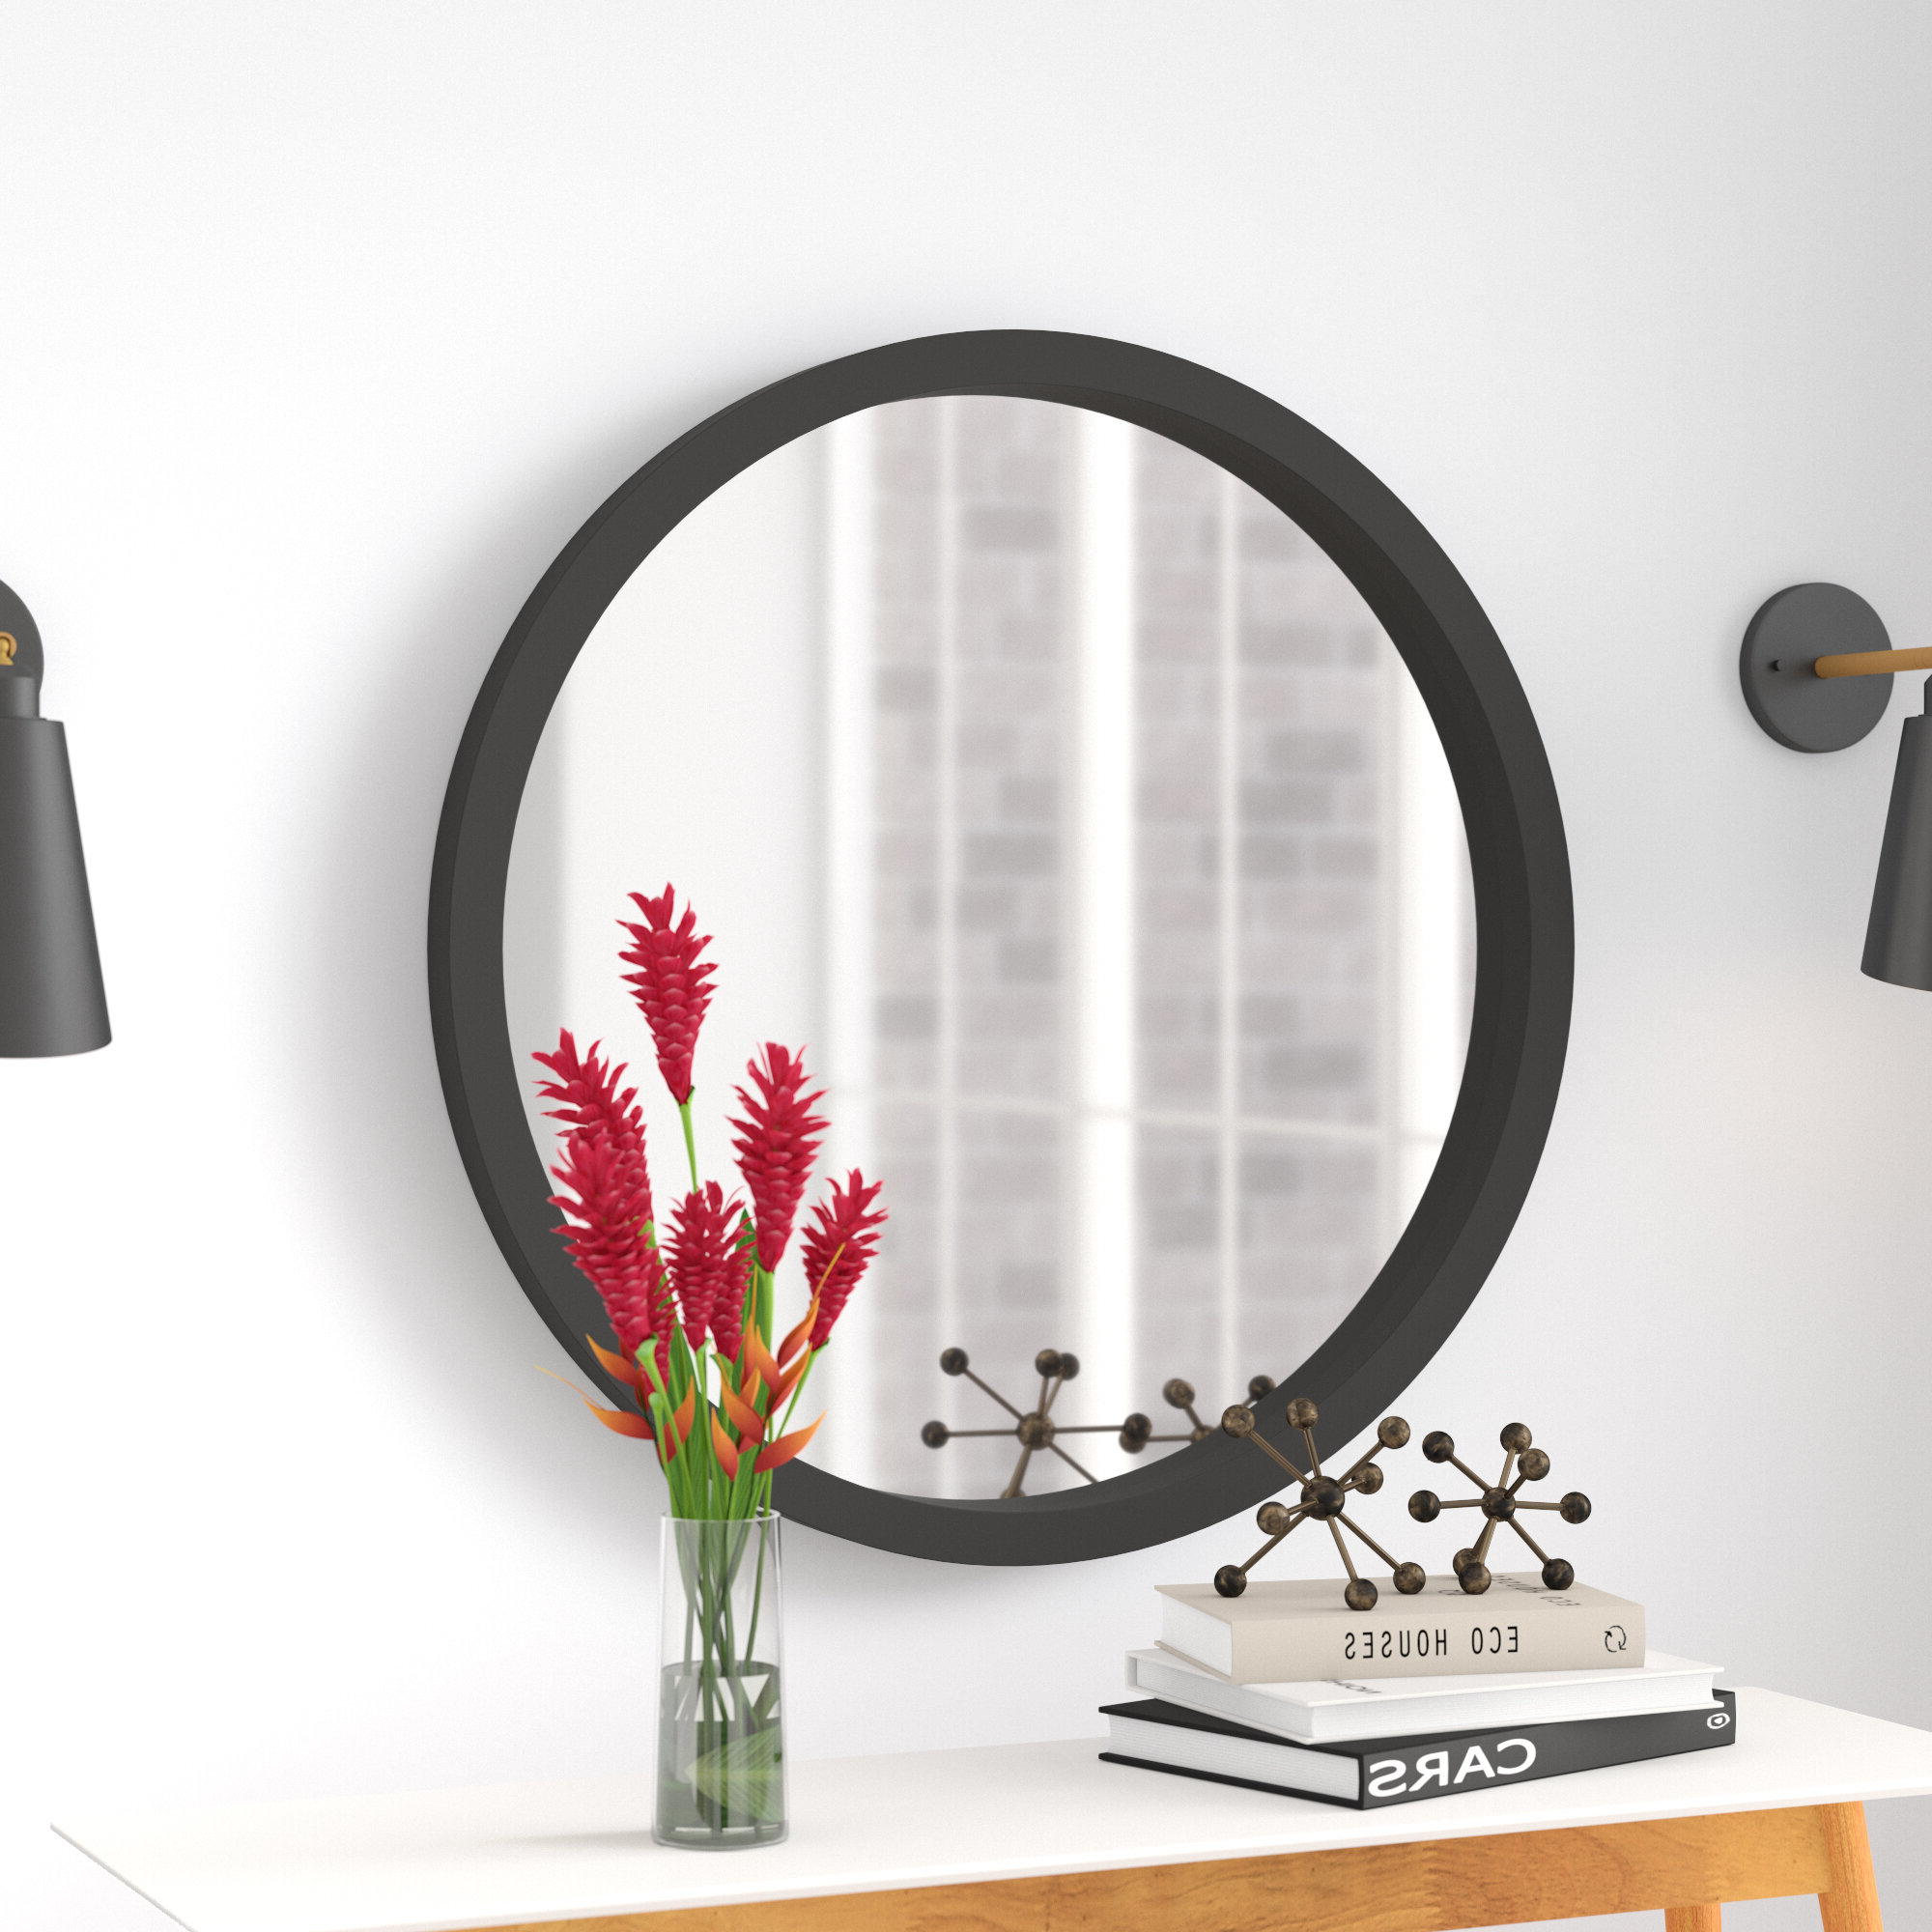 Langley Street Samson Modern & Contemporary Wall Mirror Intended For Well Known Colton Modern & Contemporary Wall Mirrors (Gallery 4 of 20)